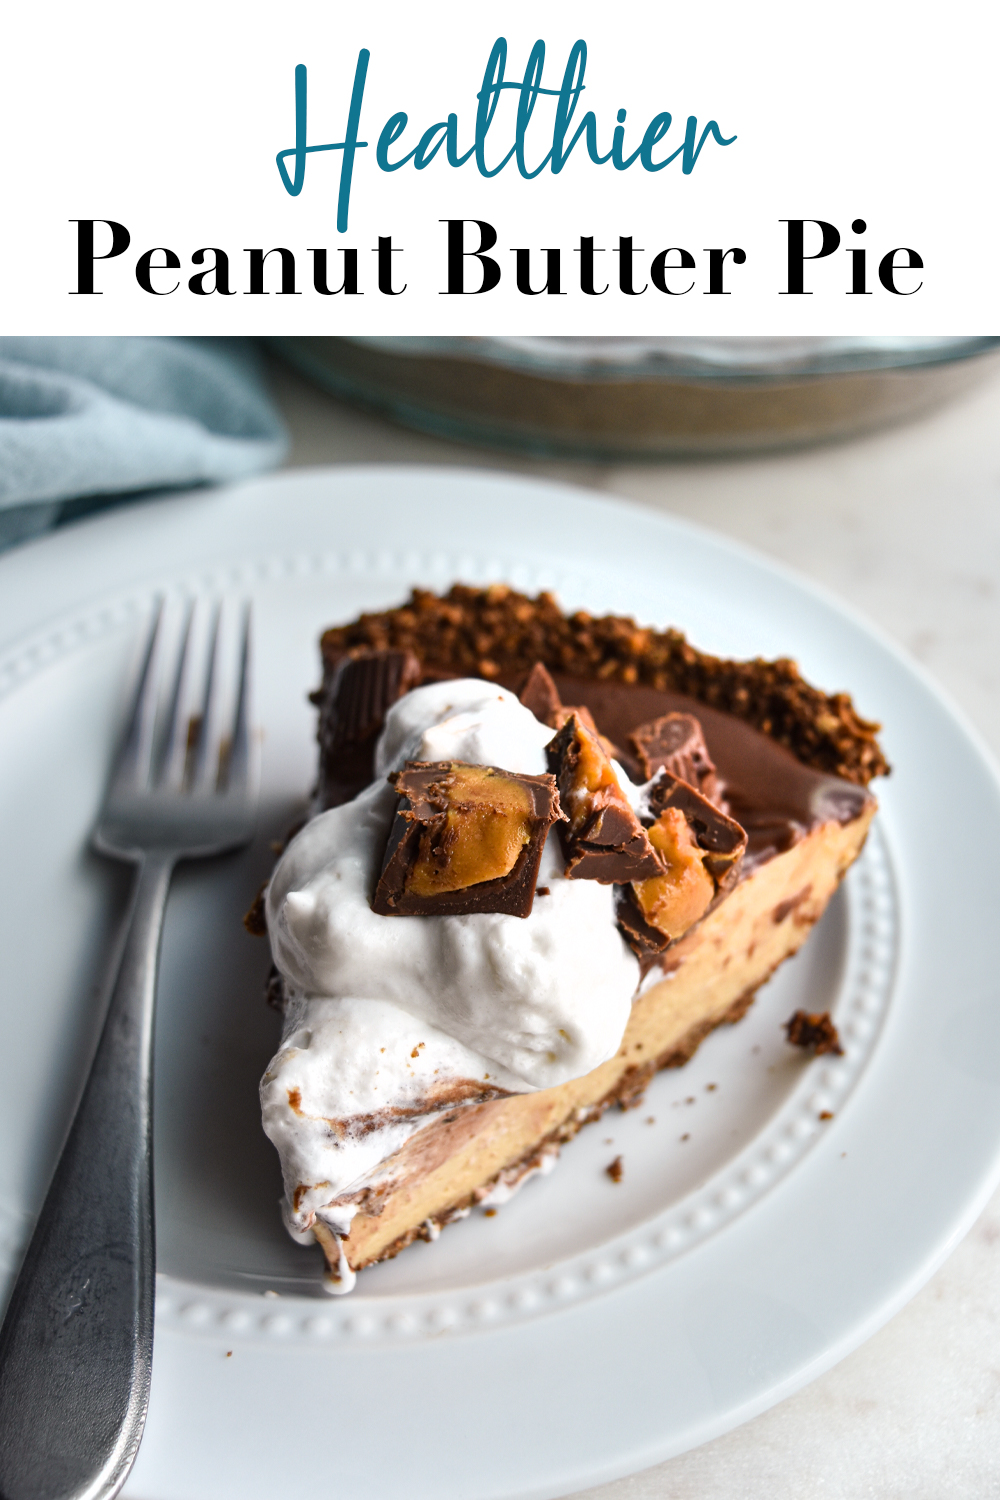 slice of pie on a white plate